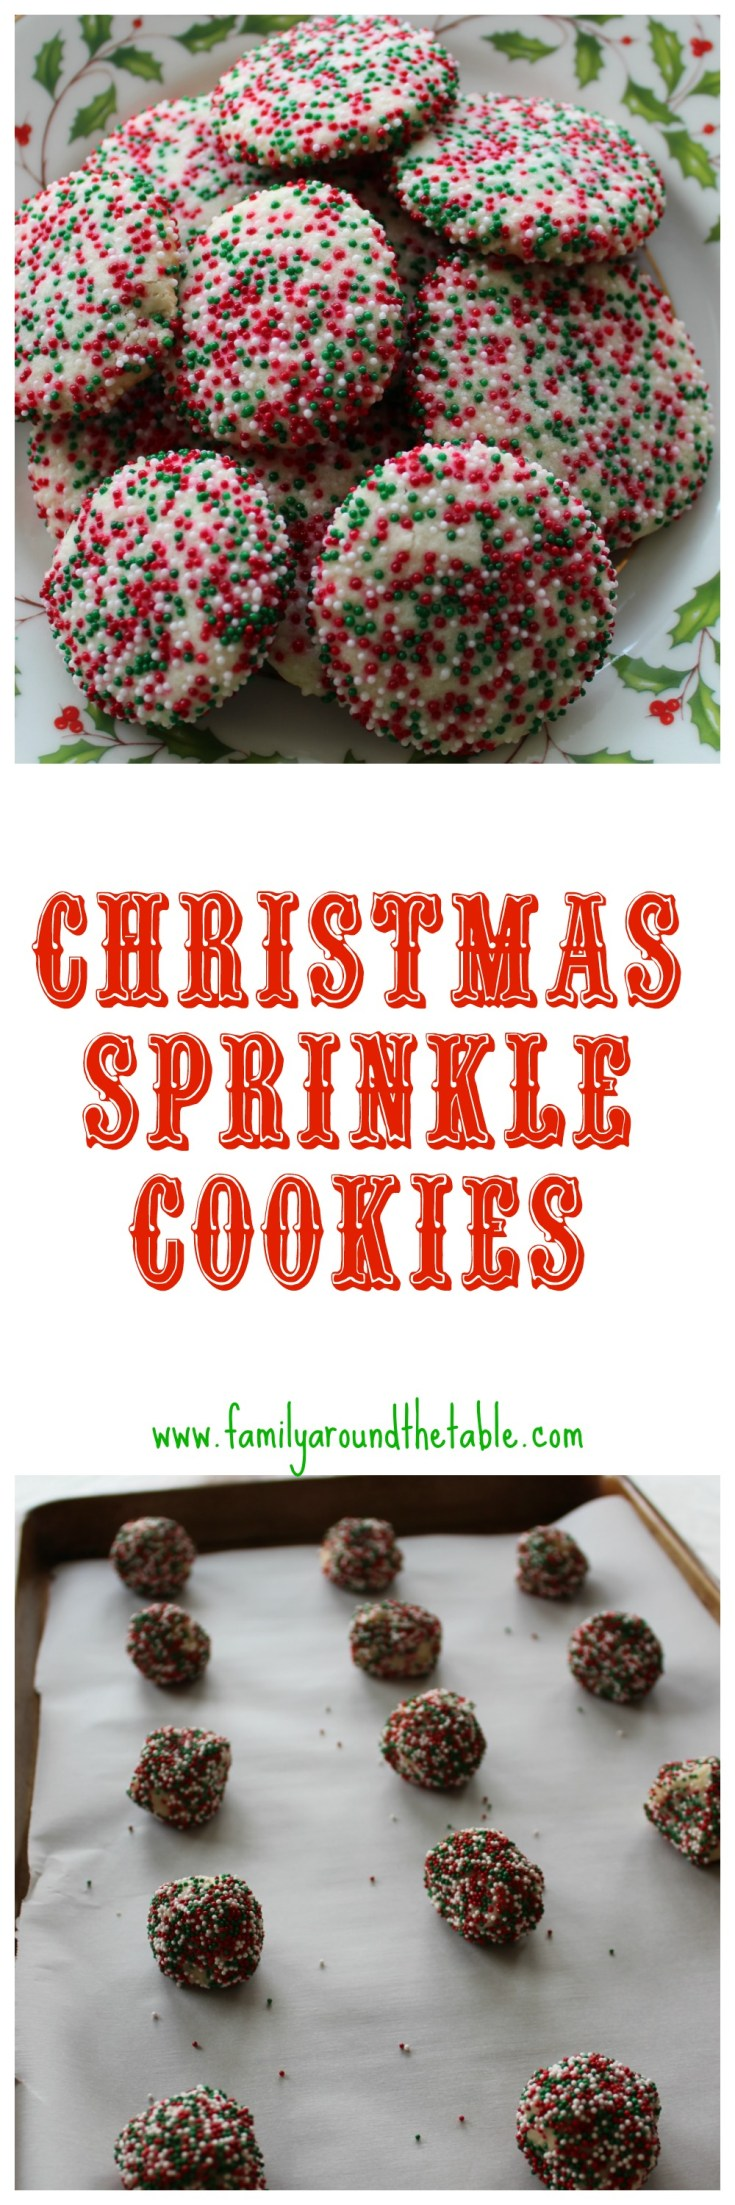 Want to make Santa happy? Leave a plate of Sprinkle Christmas Cookies.